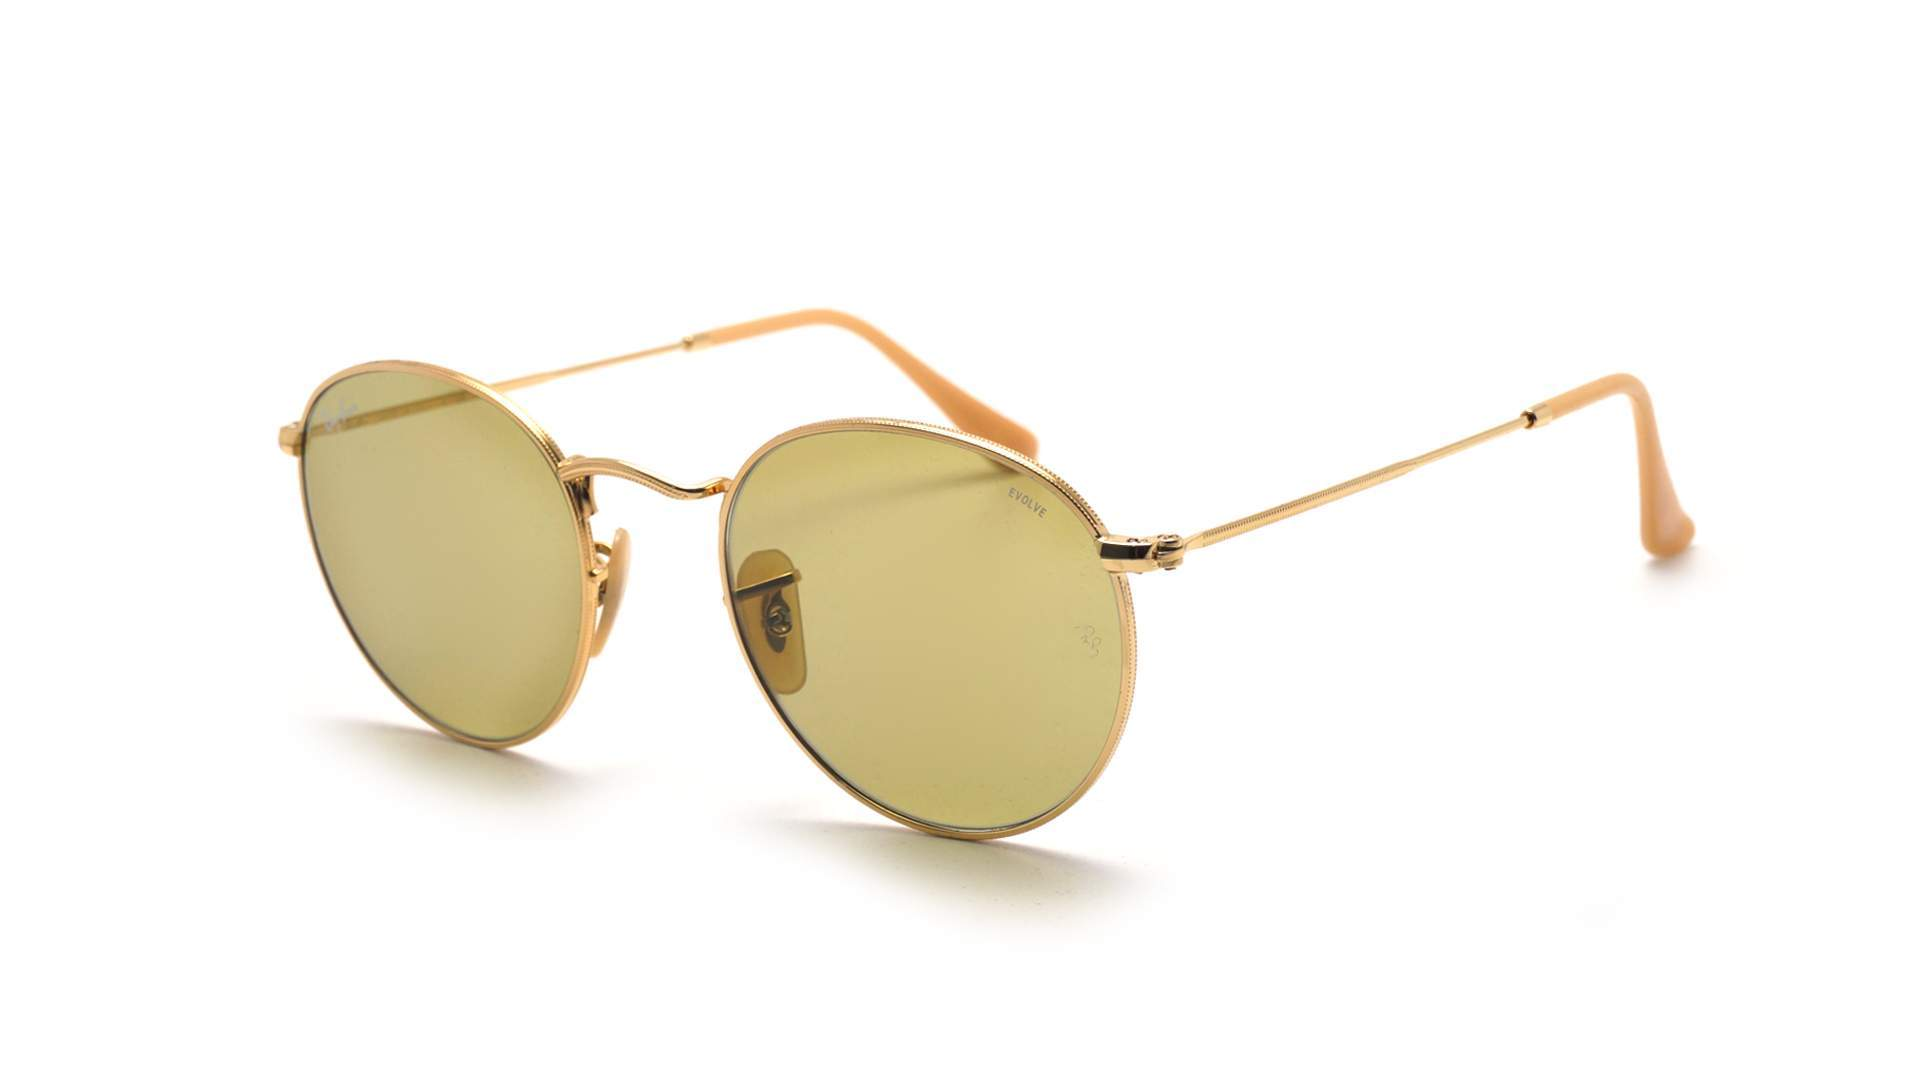 Sunglasses Ray-Ban Round Evolve Gold RB3447 9064 4C 53-21 Large Photochromic c83af9aa01